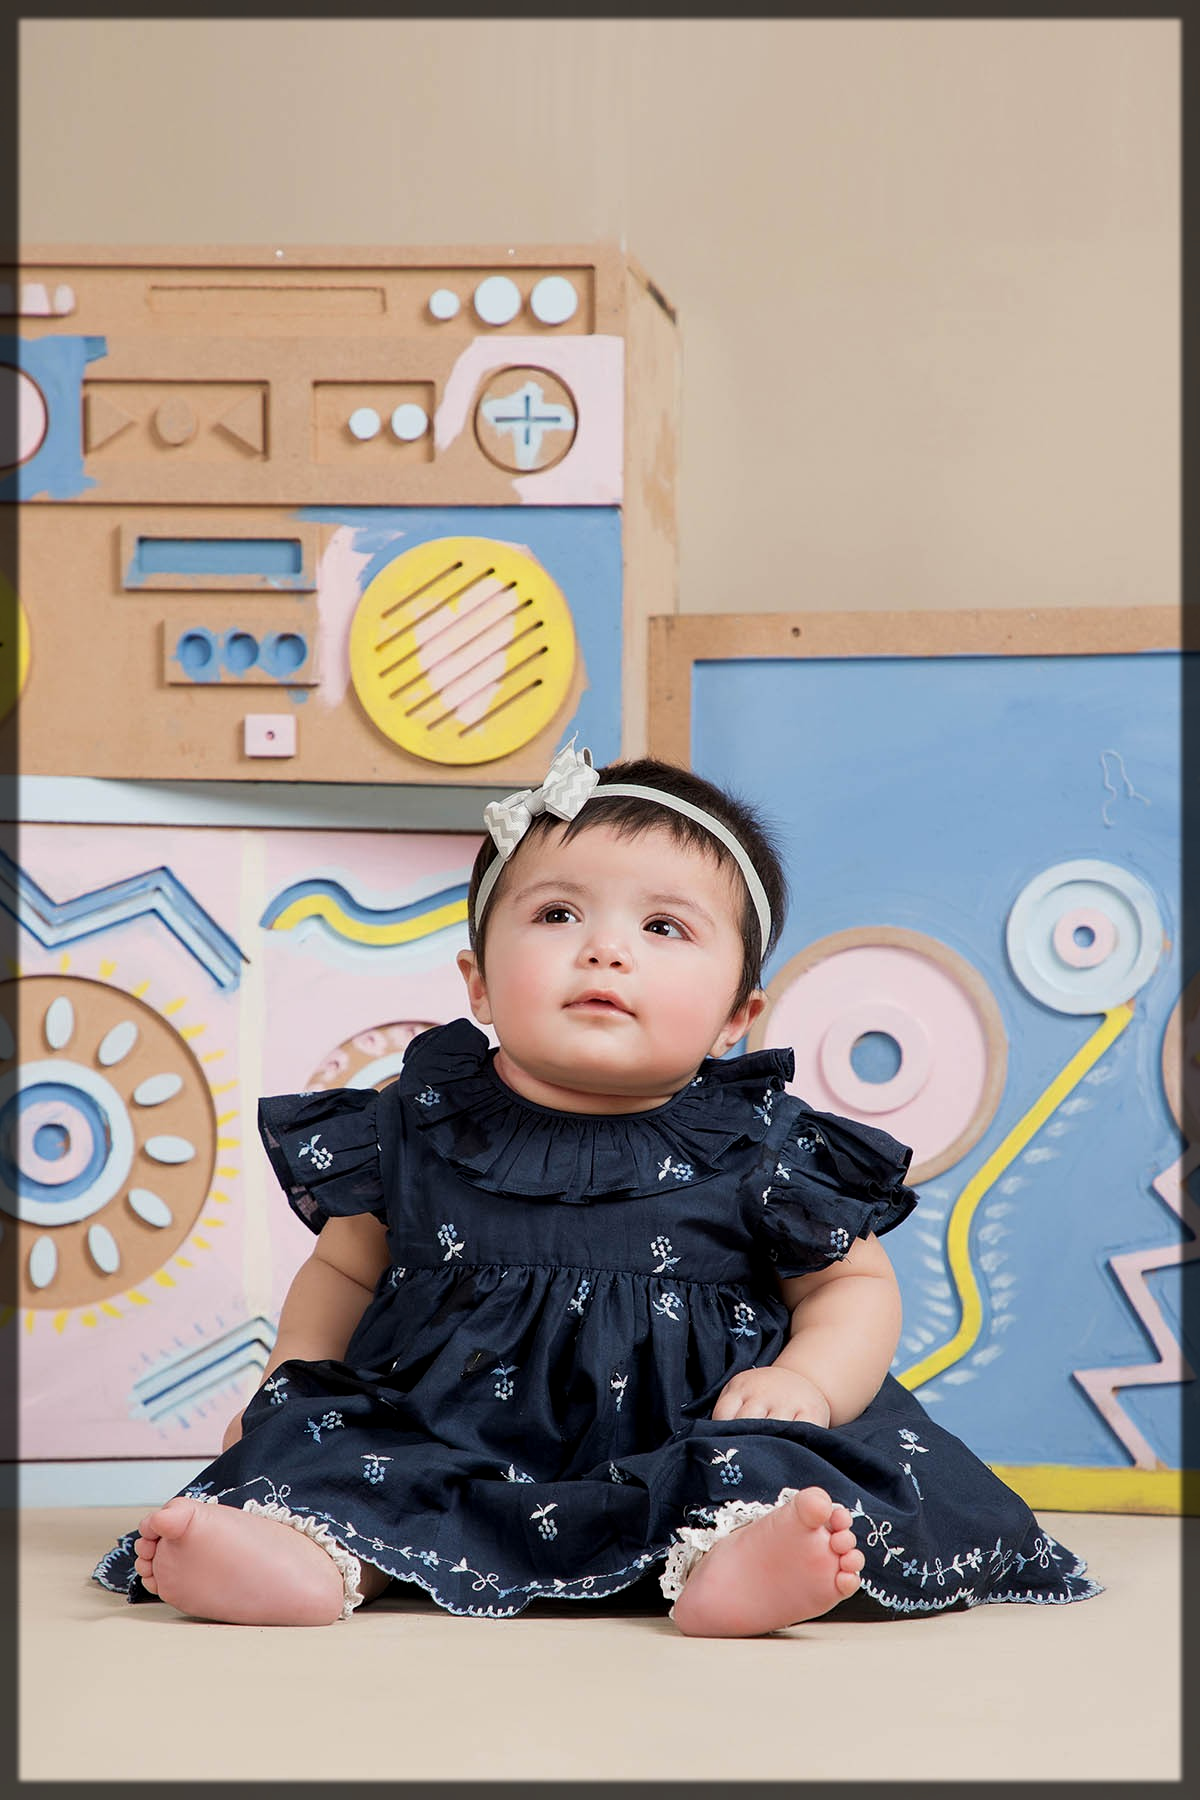 black summer outfit for baby girl